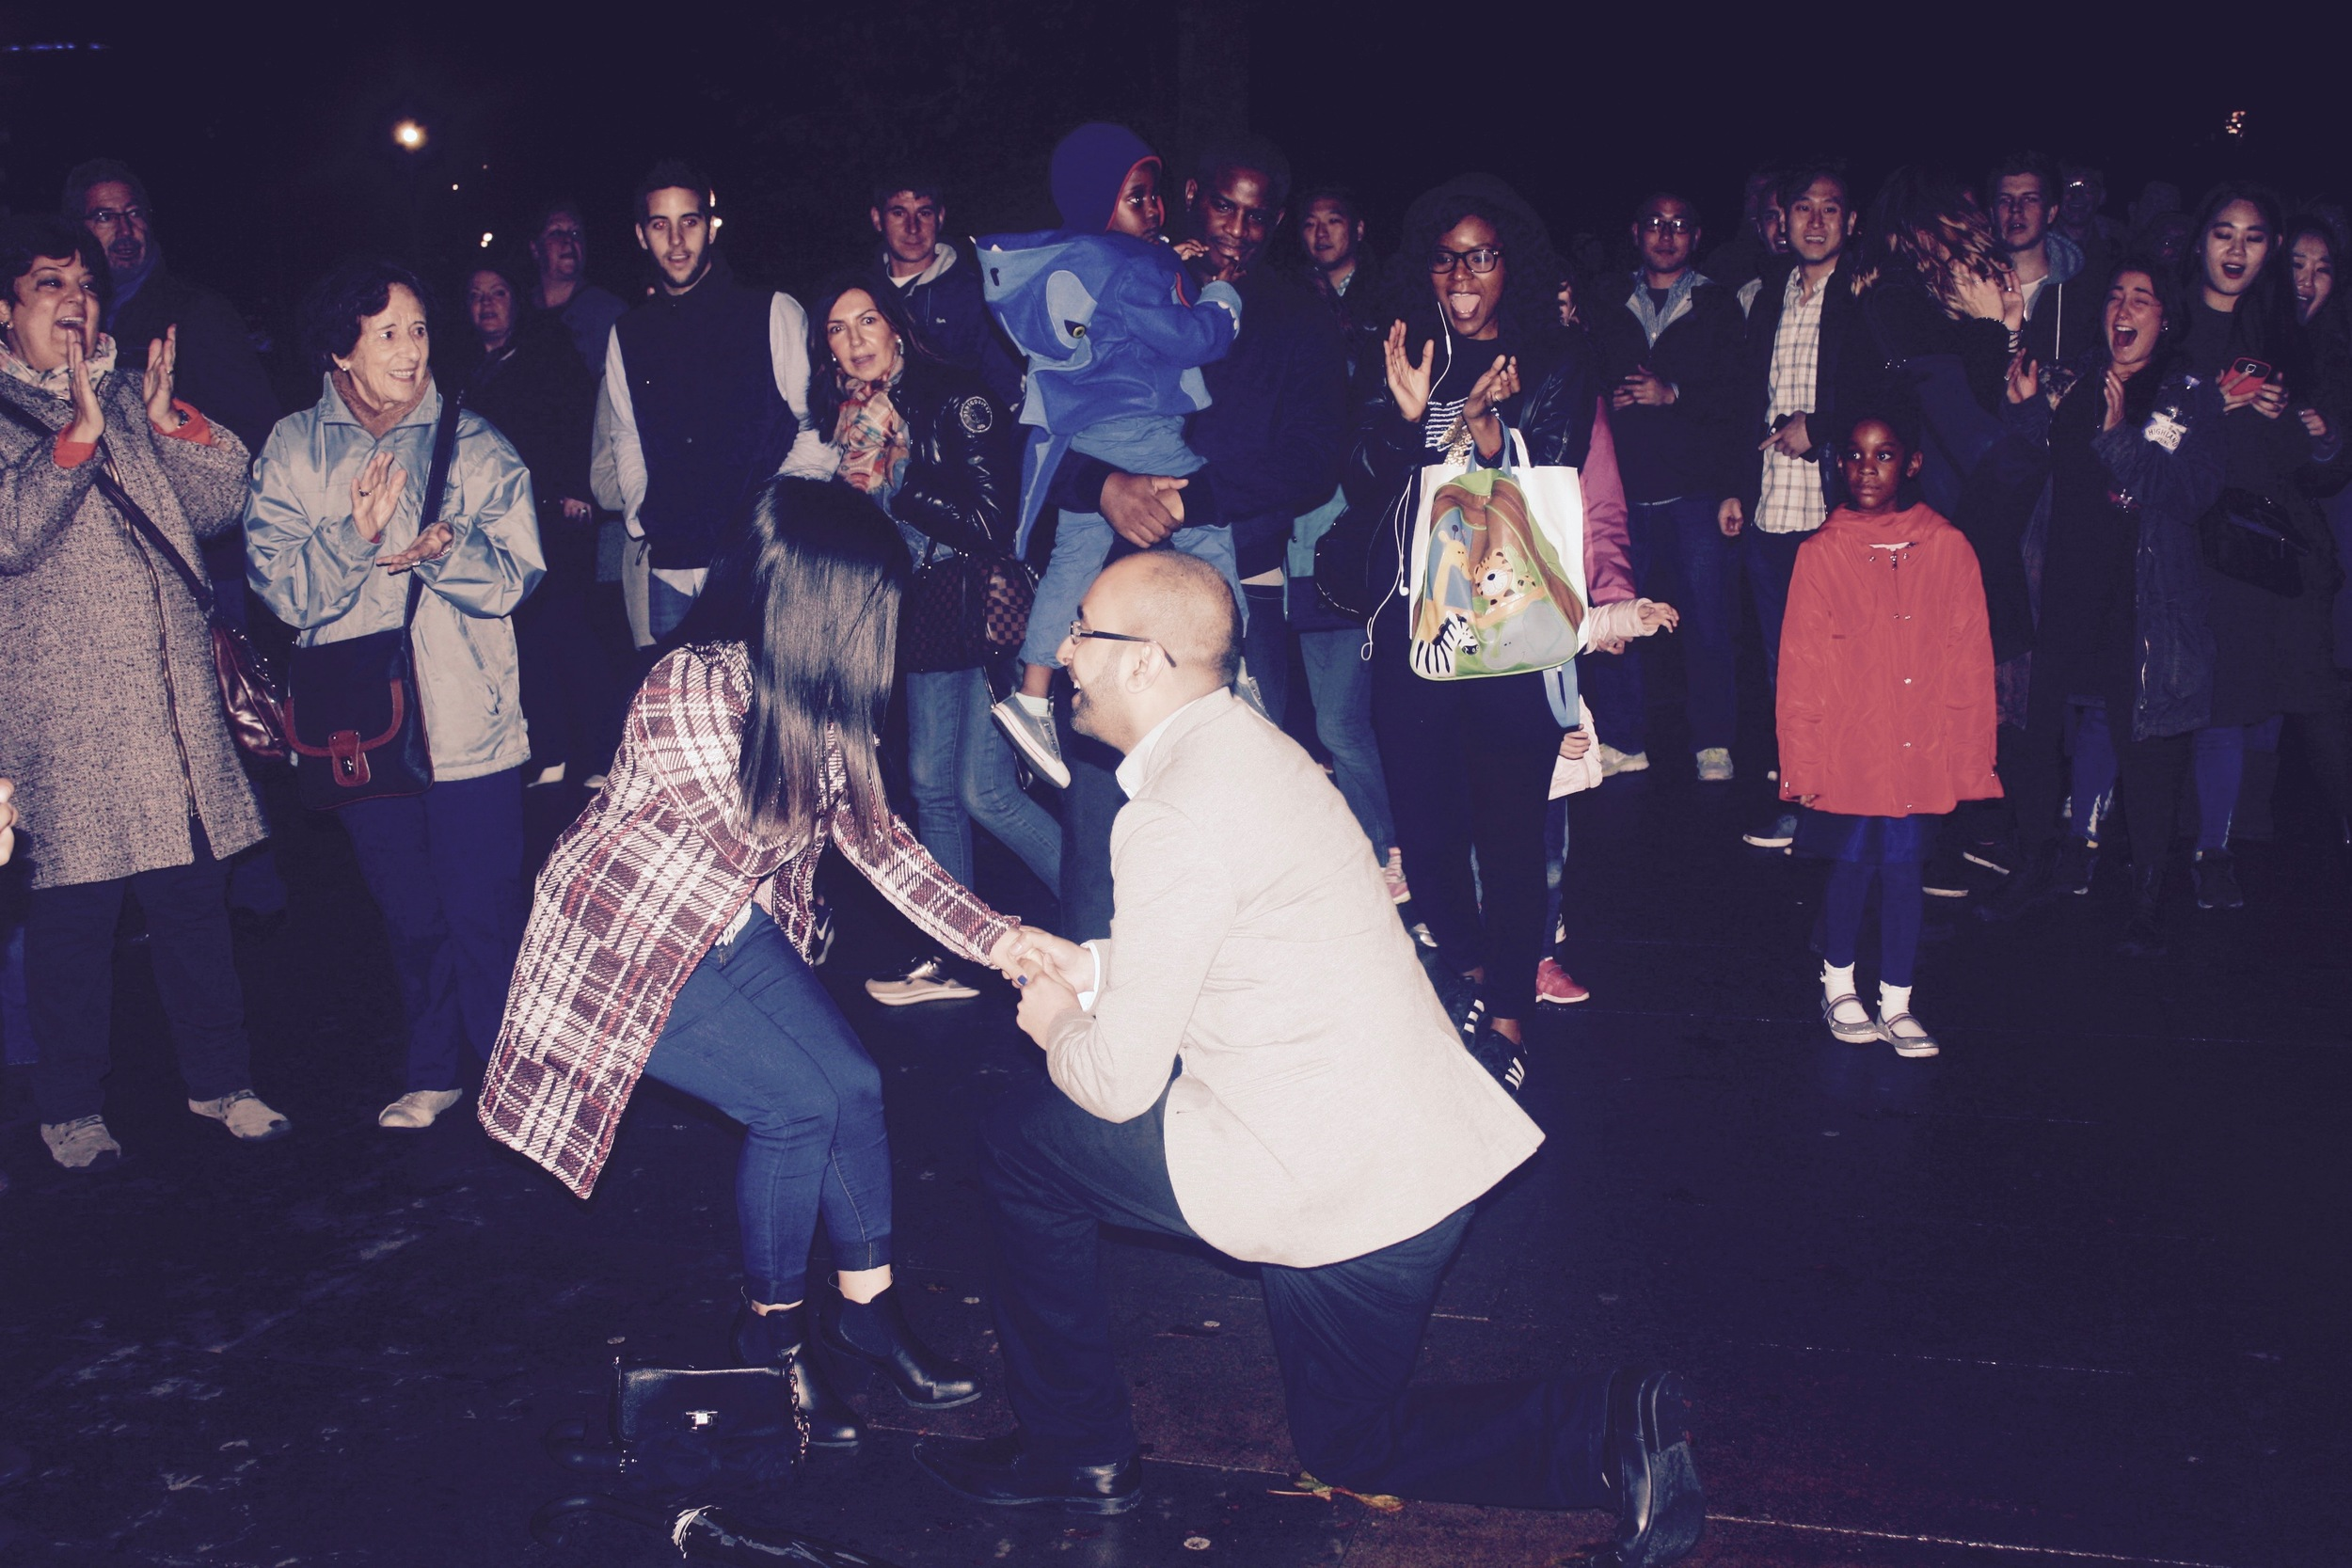 Popping the question after the flash mob!